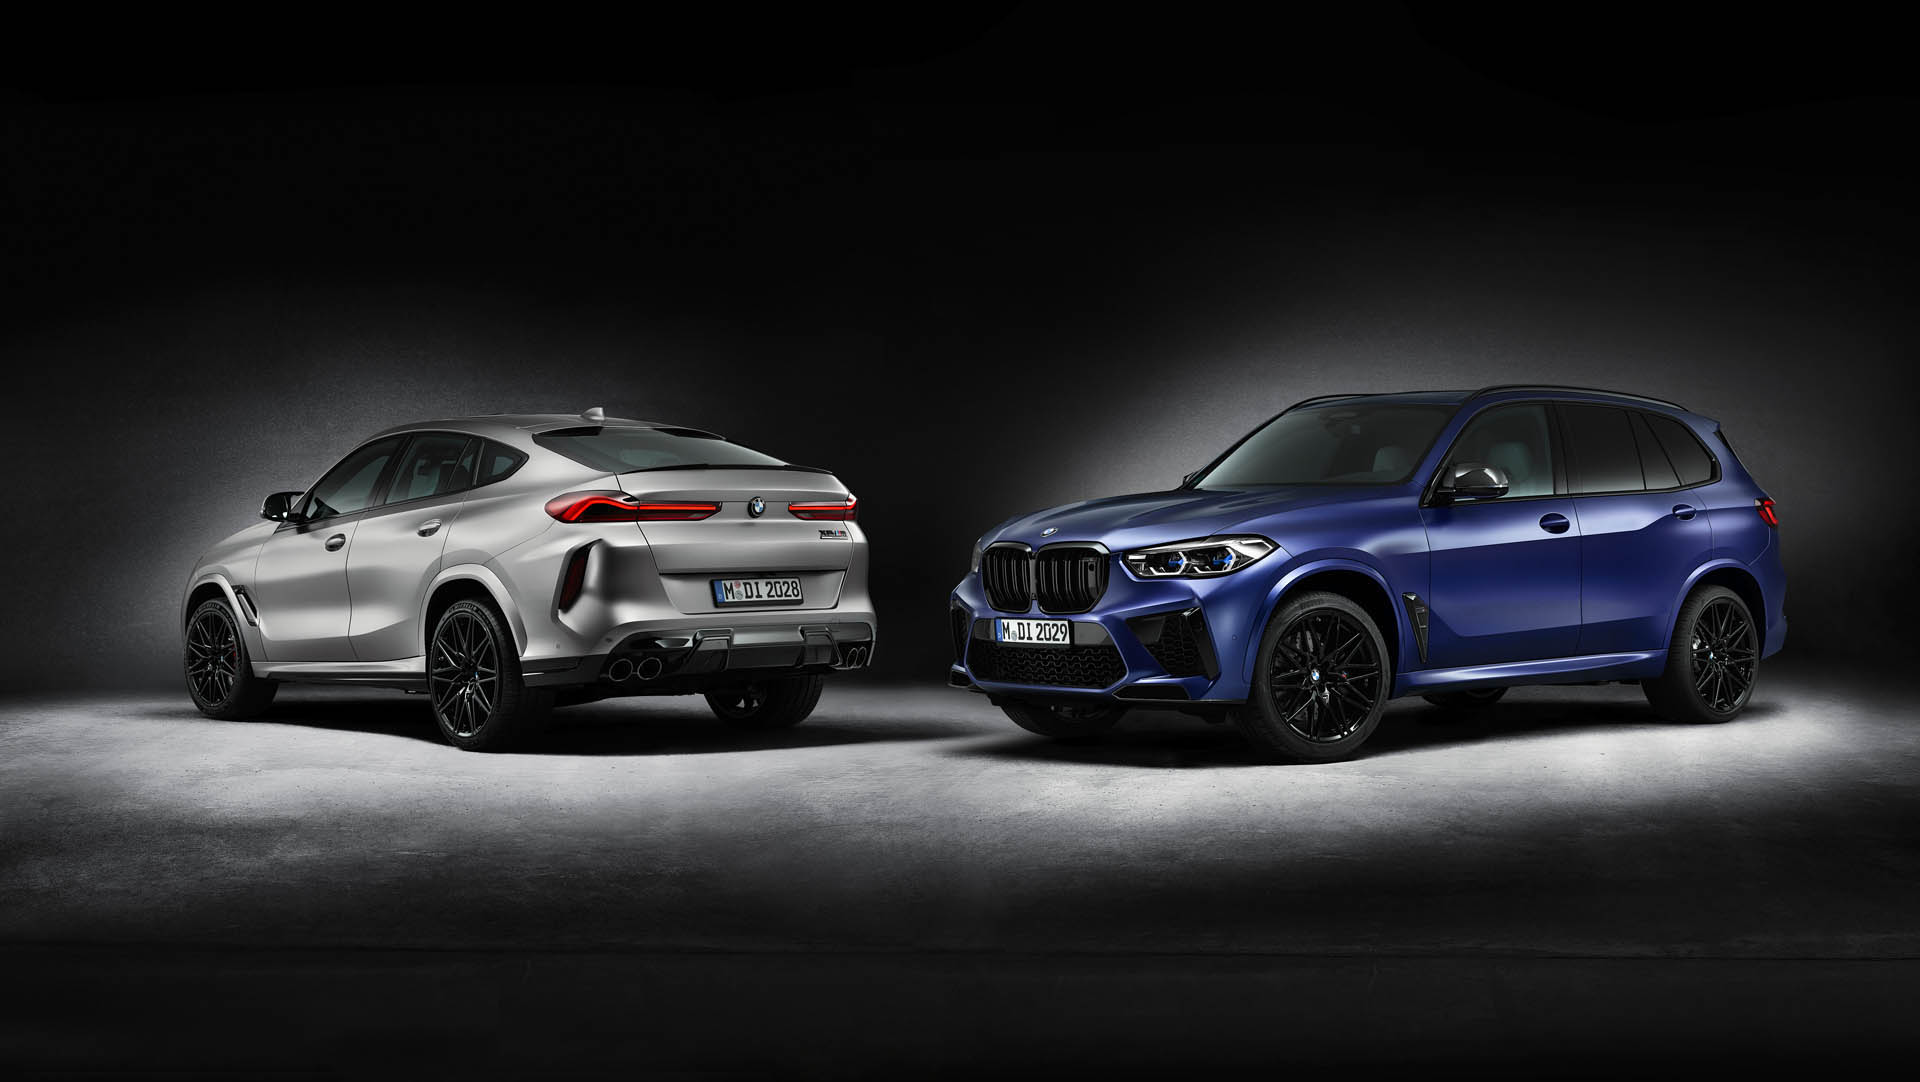 BMW X5 & X6 M Competition First Edition